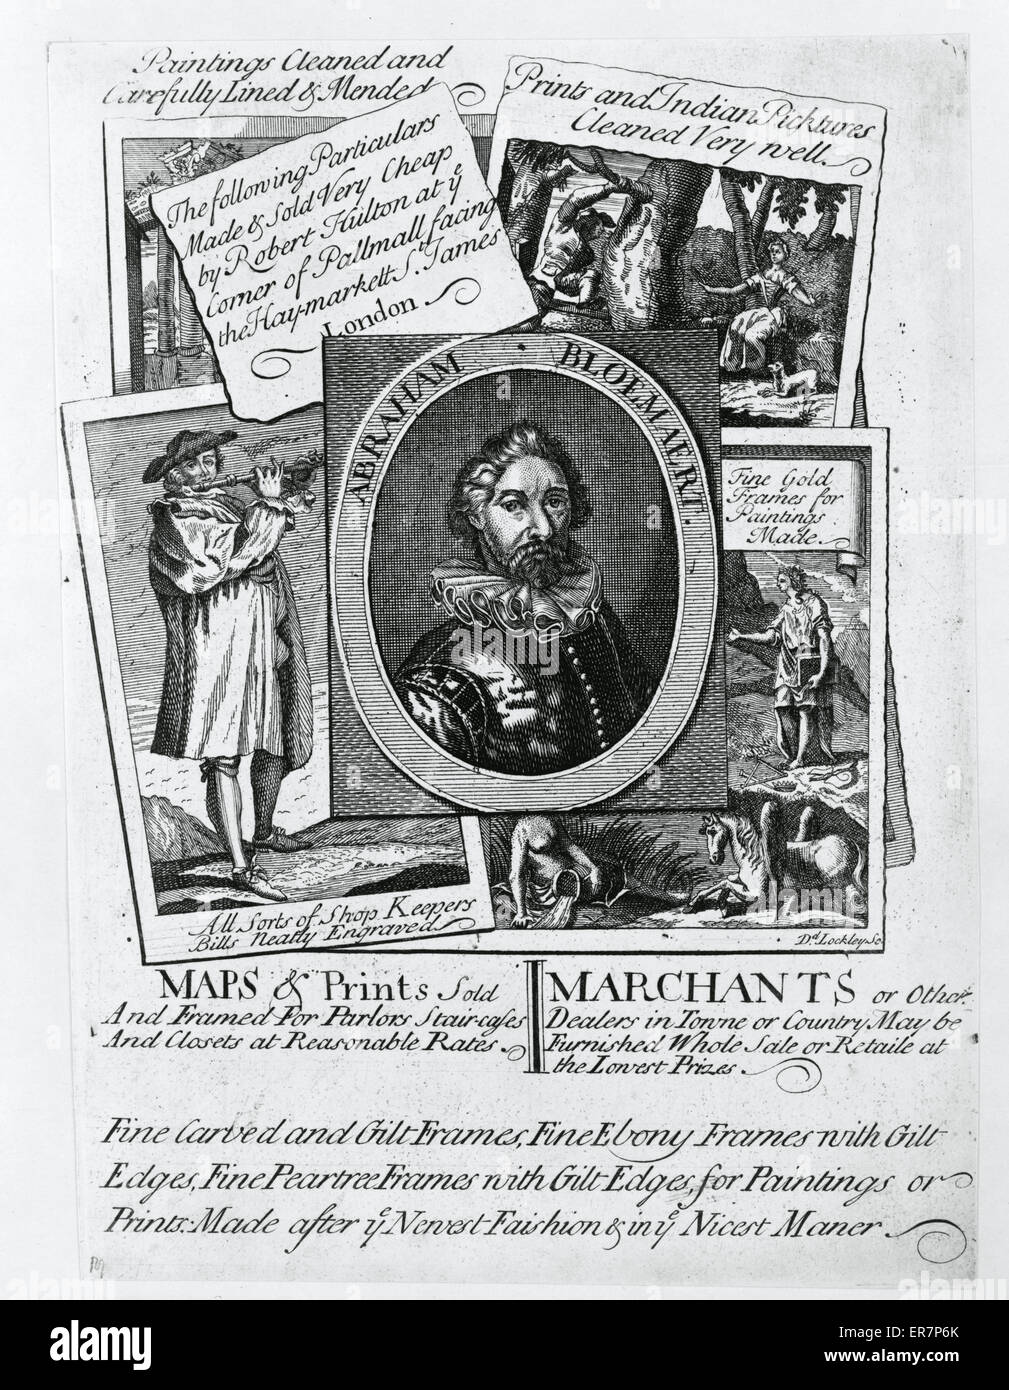 Maps and prints sold and framed Print, an advertisement for Robert Hulton's London shop, shows the types of - Stock Image